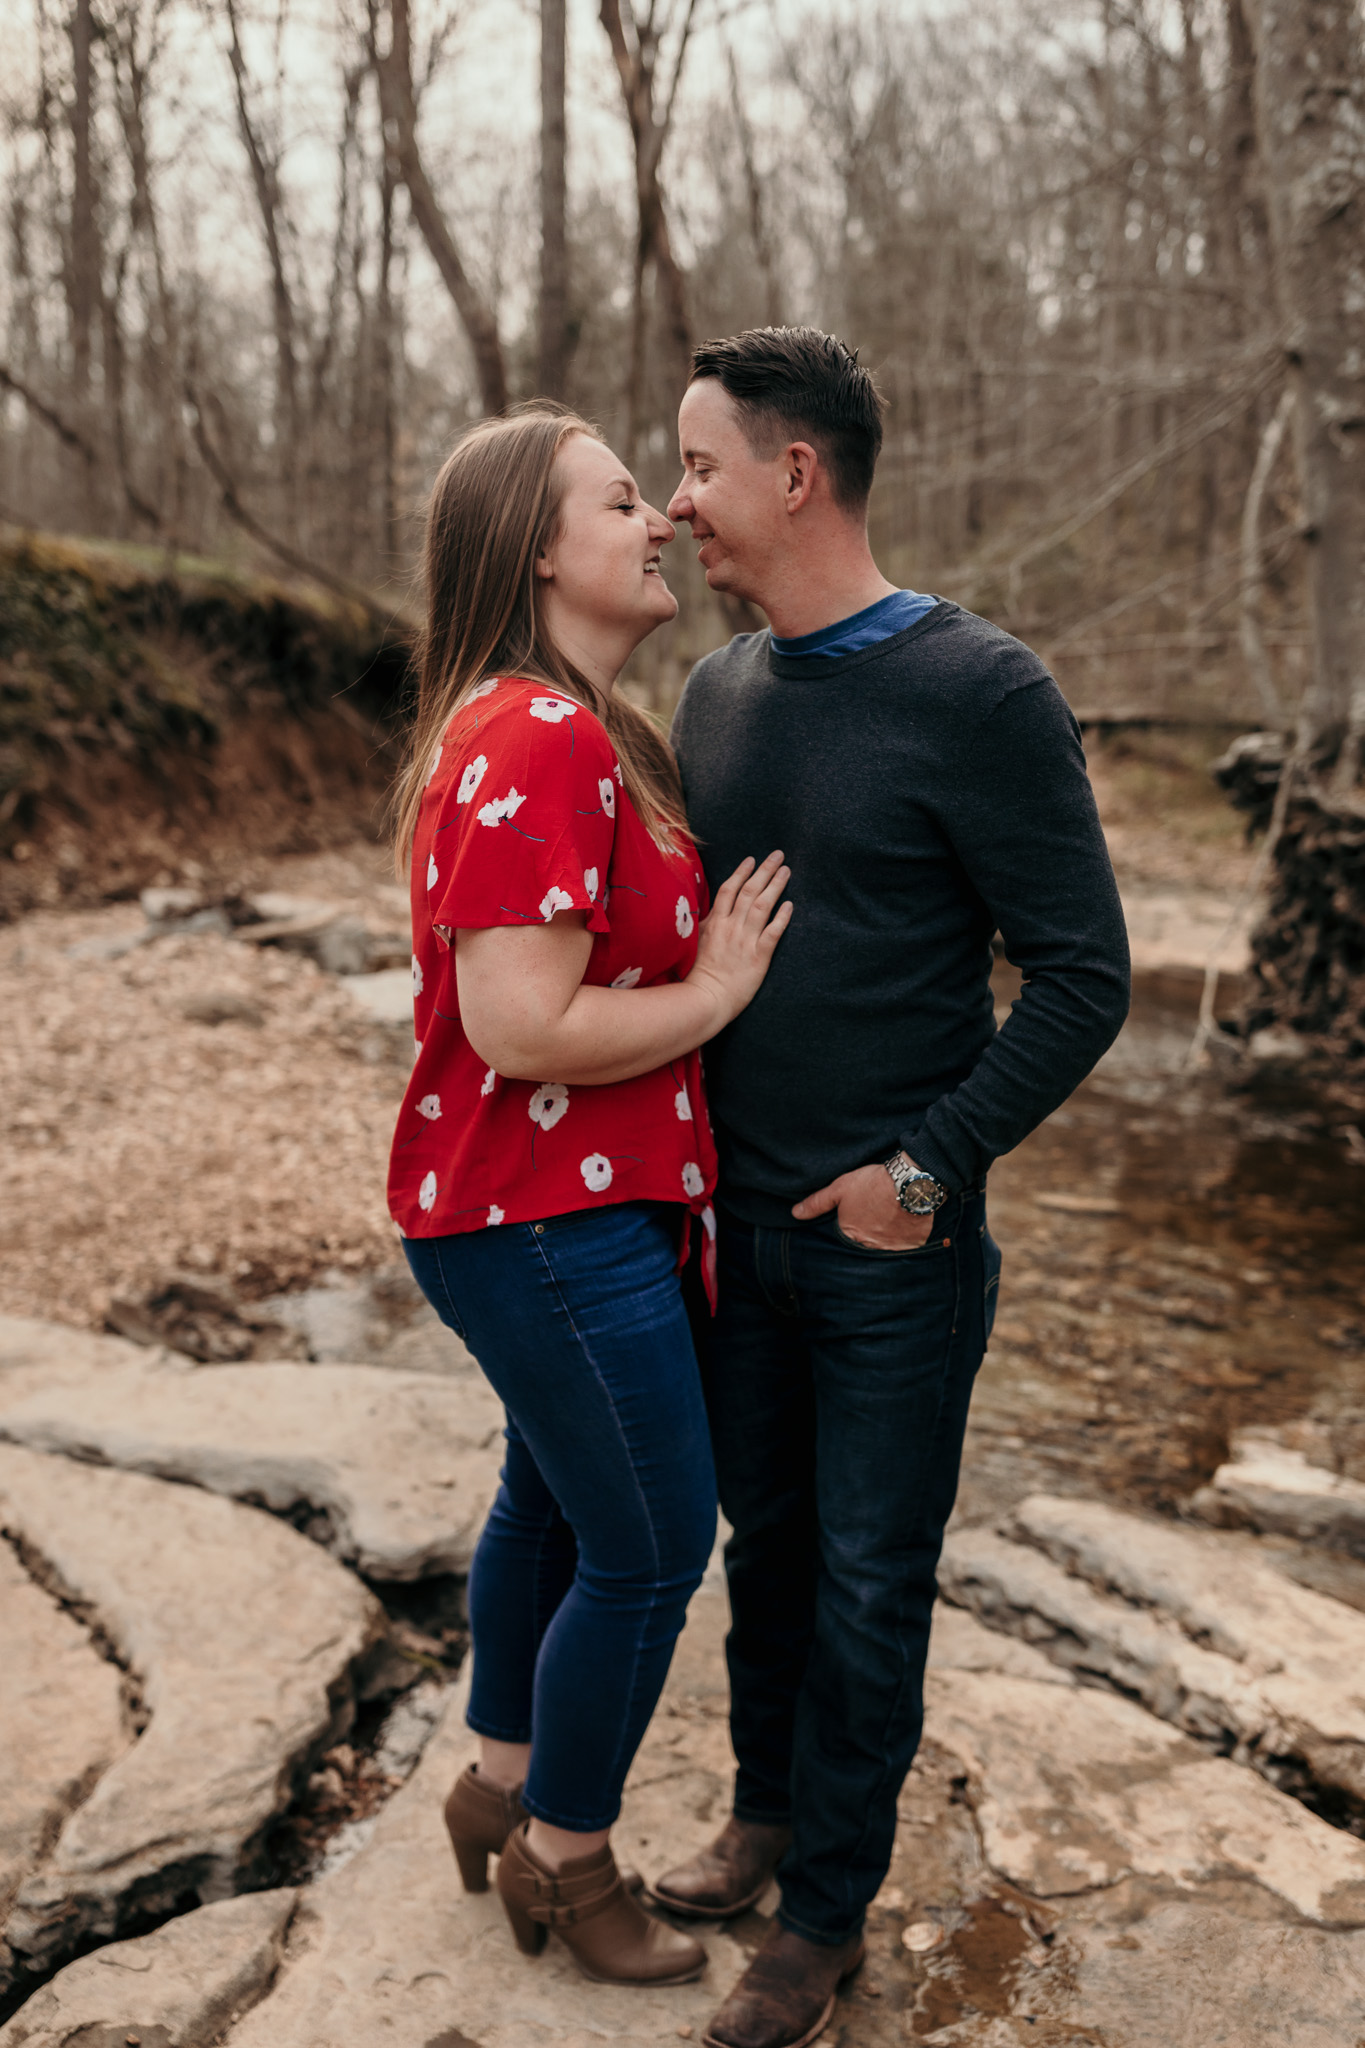 Military Couple Sharing Special Moment